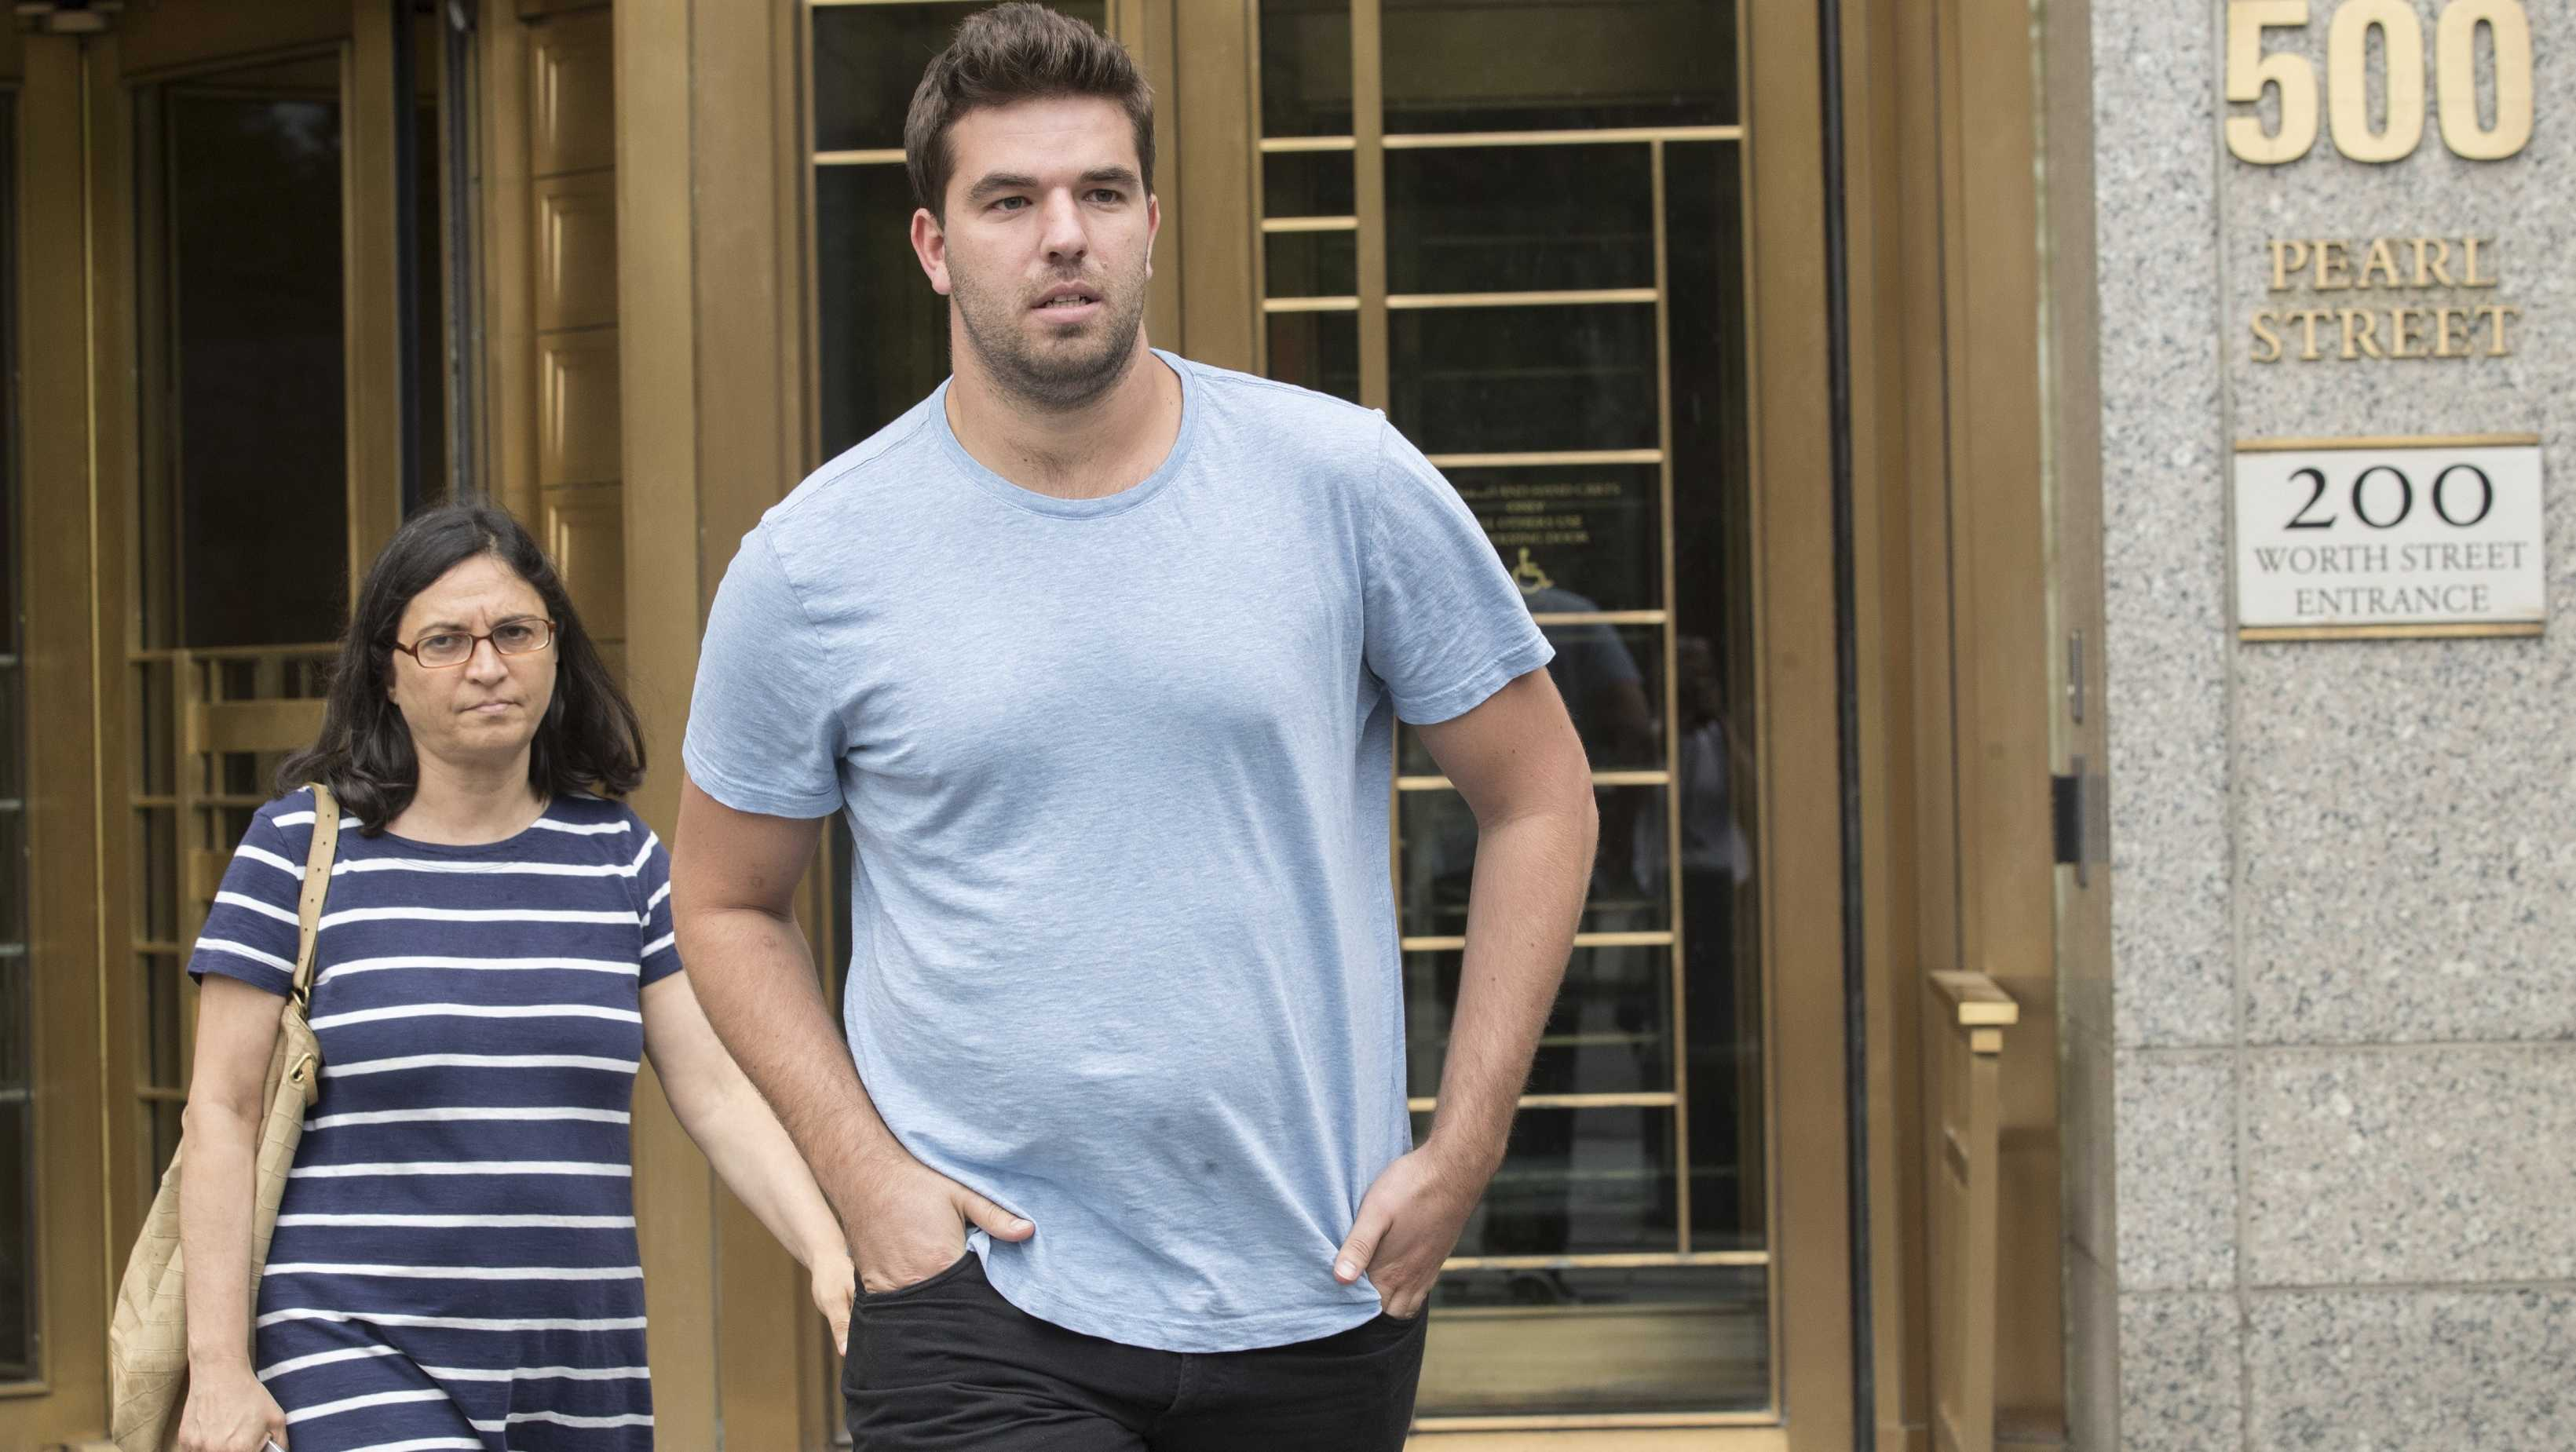 Billy McFarland, right, leaves federal court with his attorney Sabrina Shroff after his arraignment, Saturday, July 1, 2017, in New York. McFarland is charged with scheming to defraud investors in his company, Fyre Media.